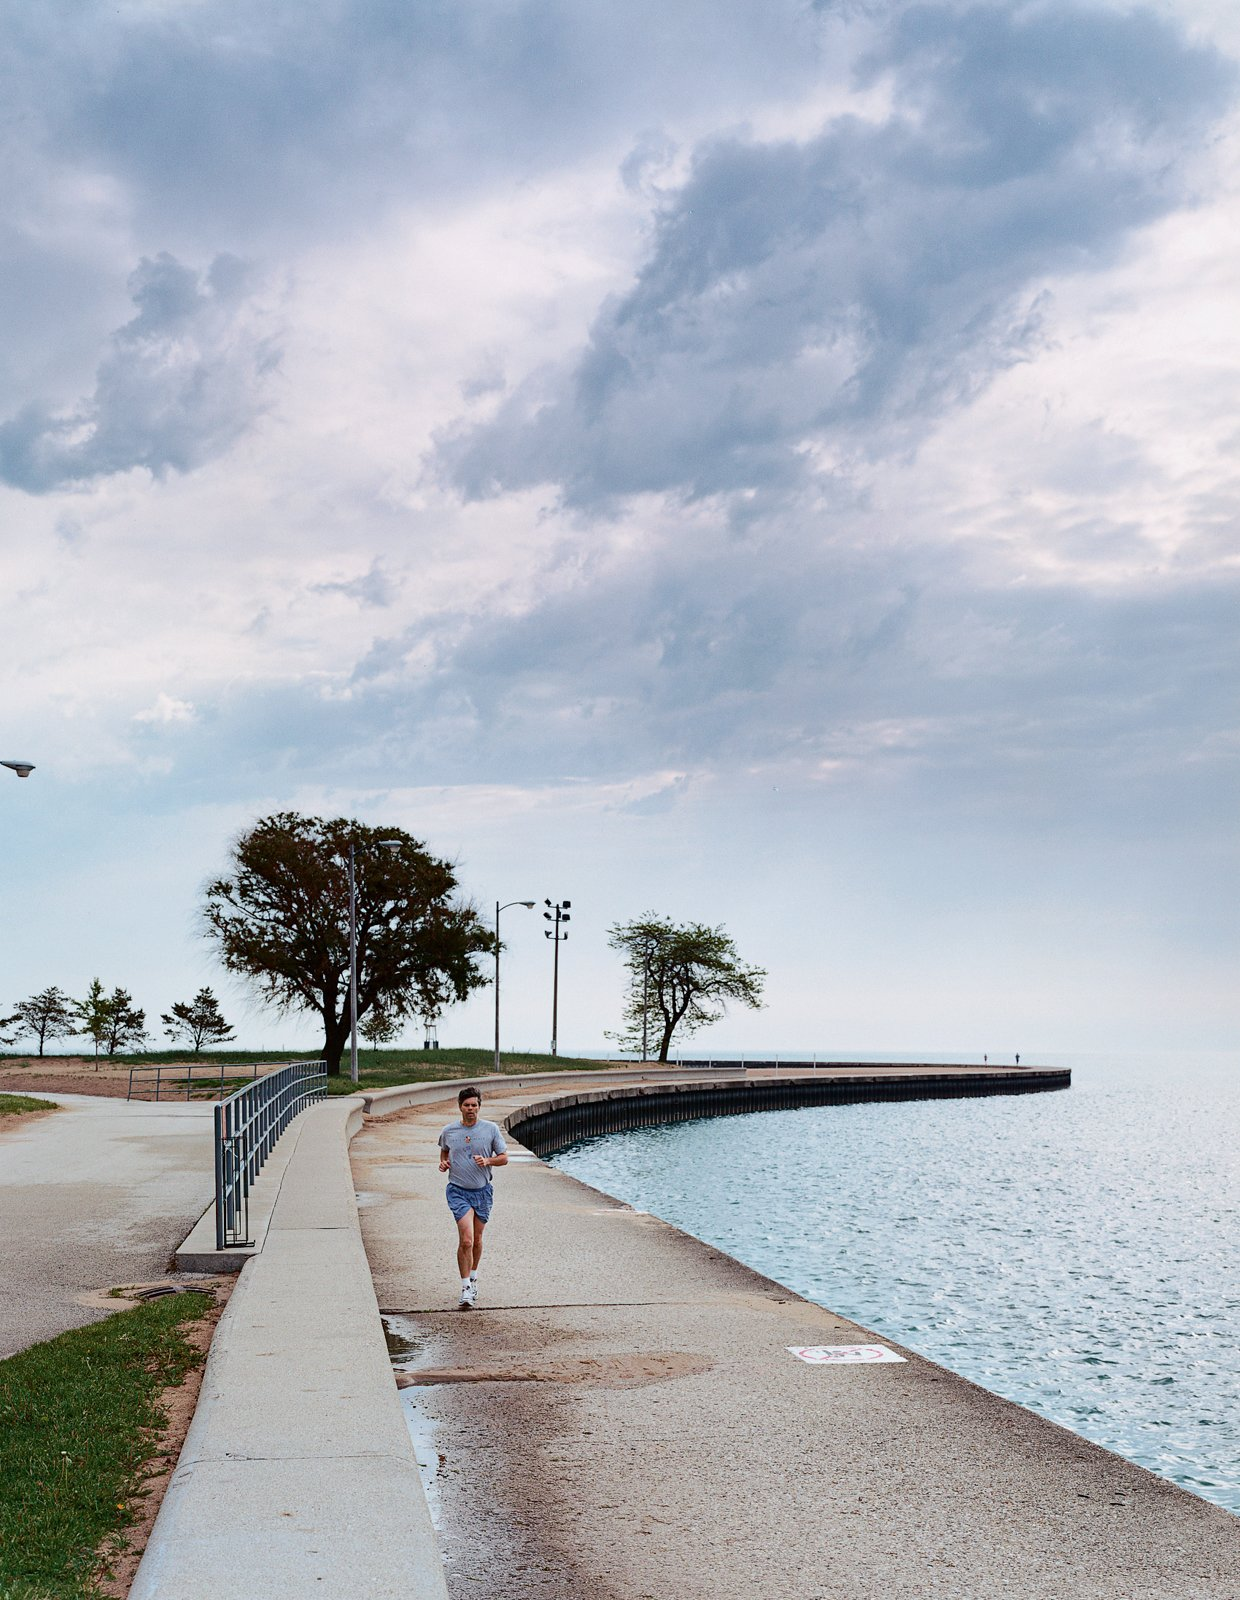 The Lake Shore Drive bike path provides ample opportunity for outdoor recreation.  Photo 2 of 8 in The Real Chicago